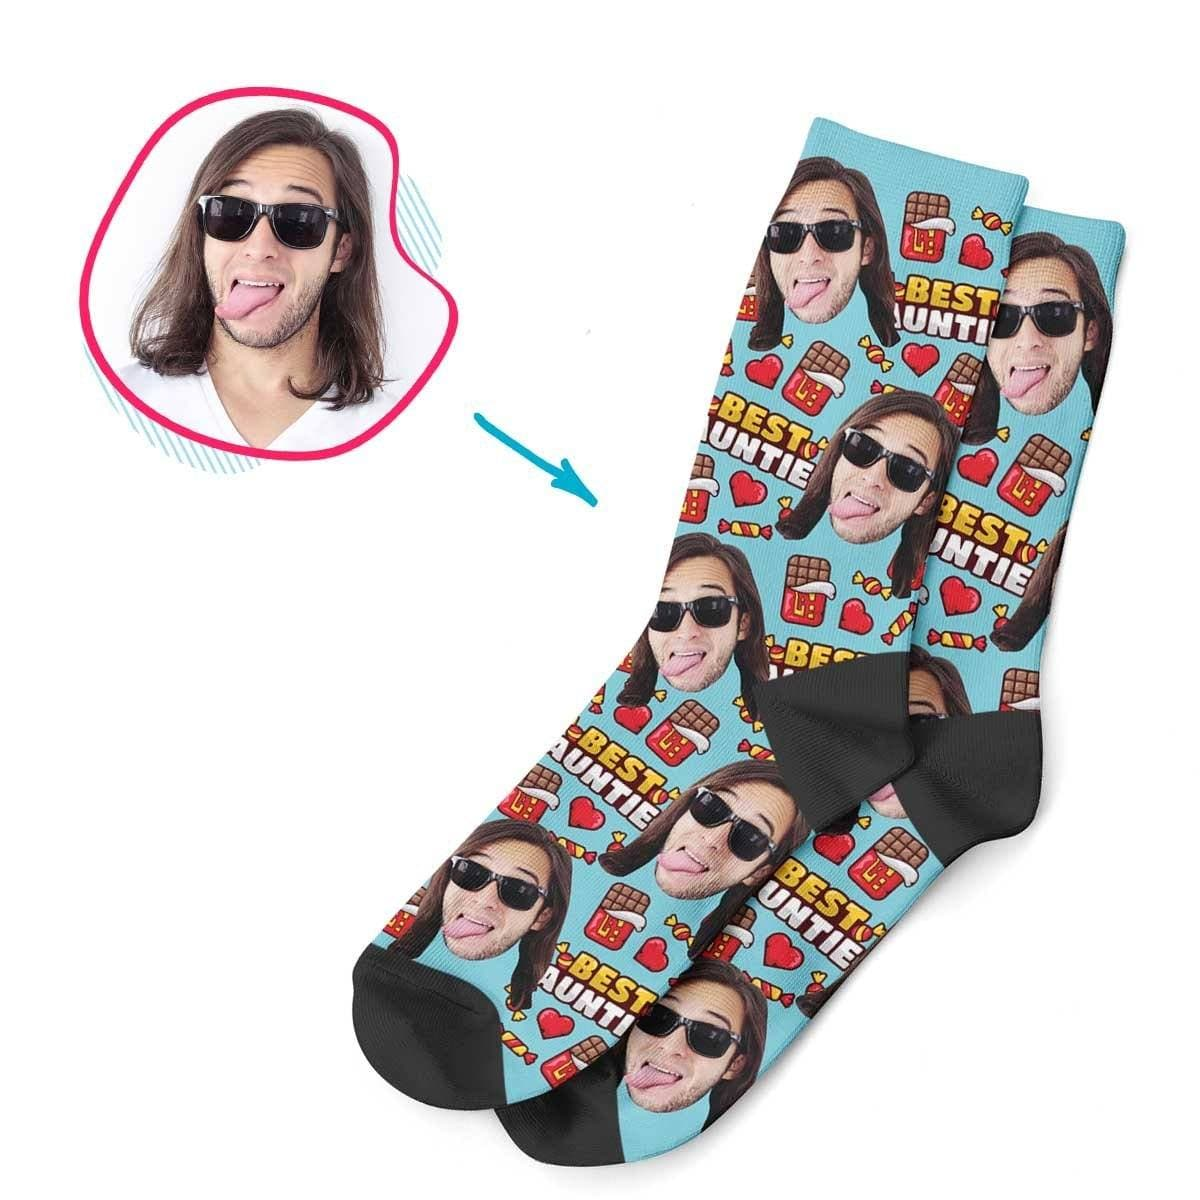 Blue Auntie personalized socks with photo of face printed on them